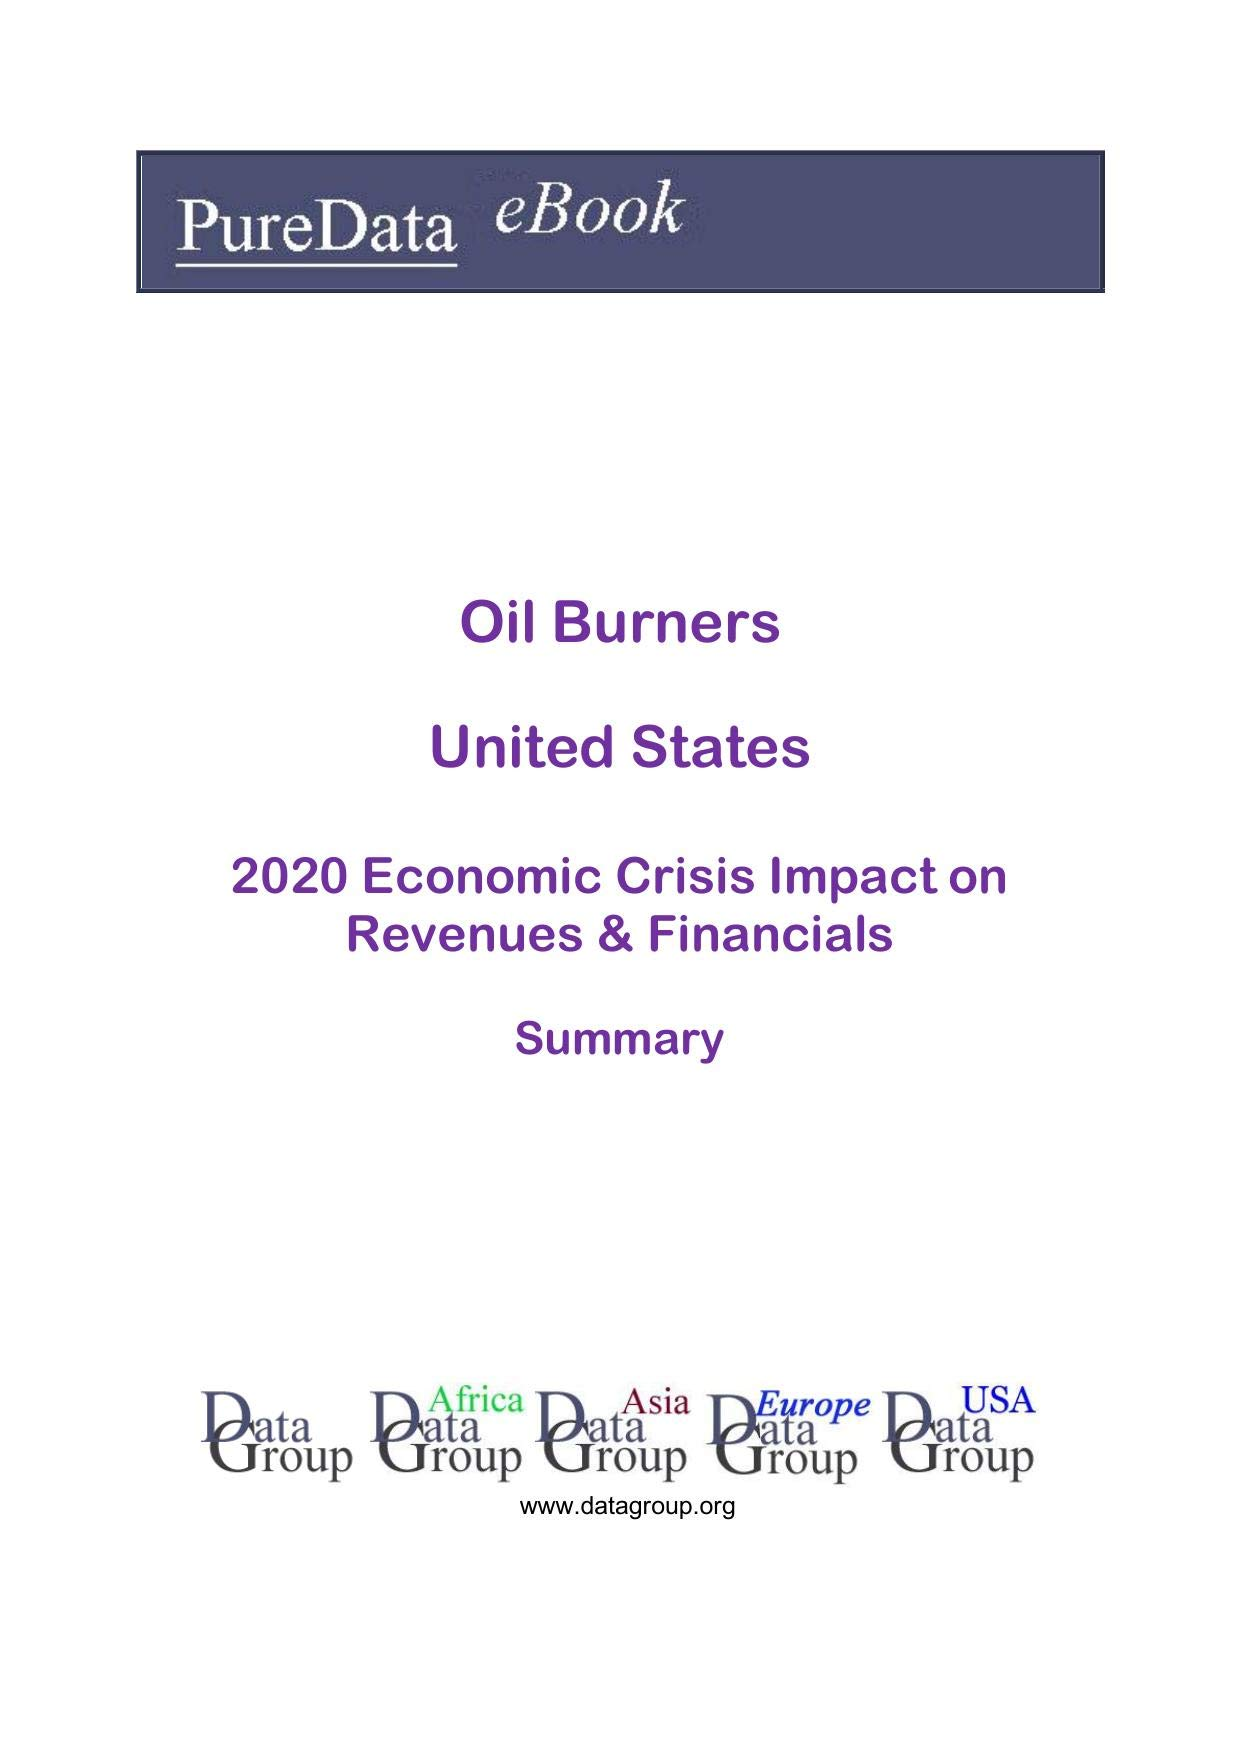 Oil Burners United States Summary: 2020 Economic Crisis Impact on Revenues & Financials